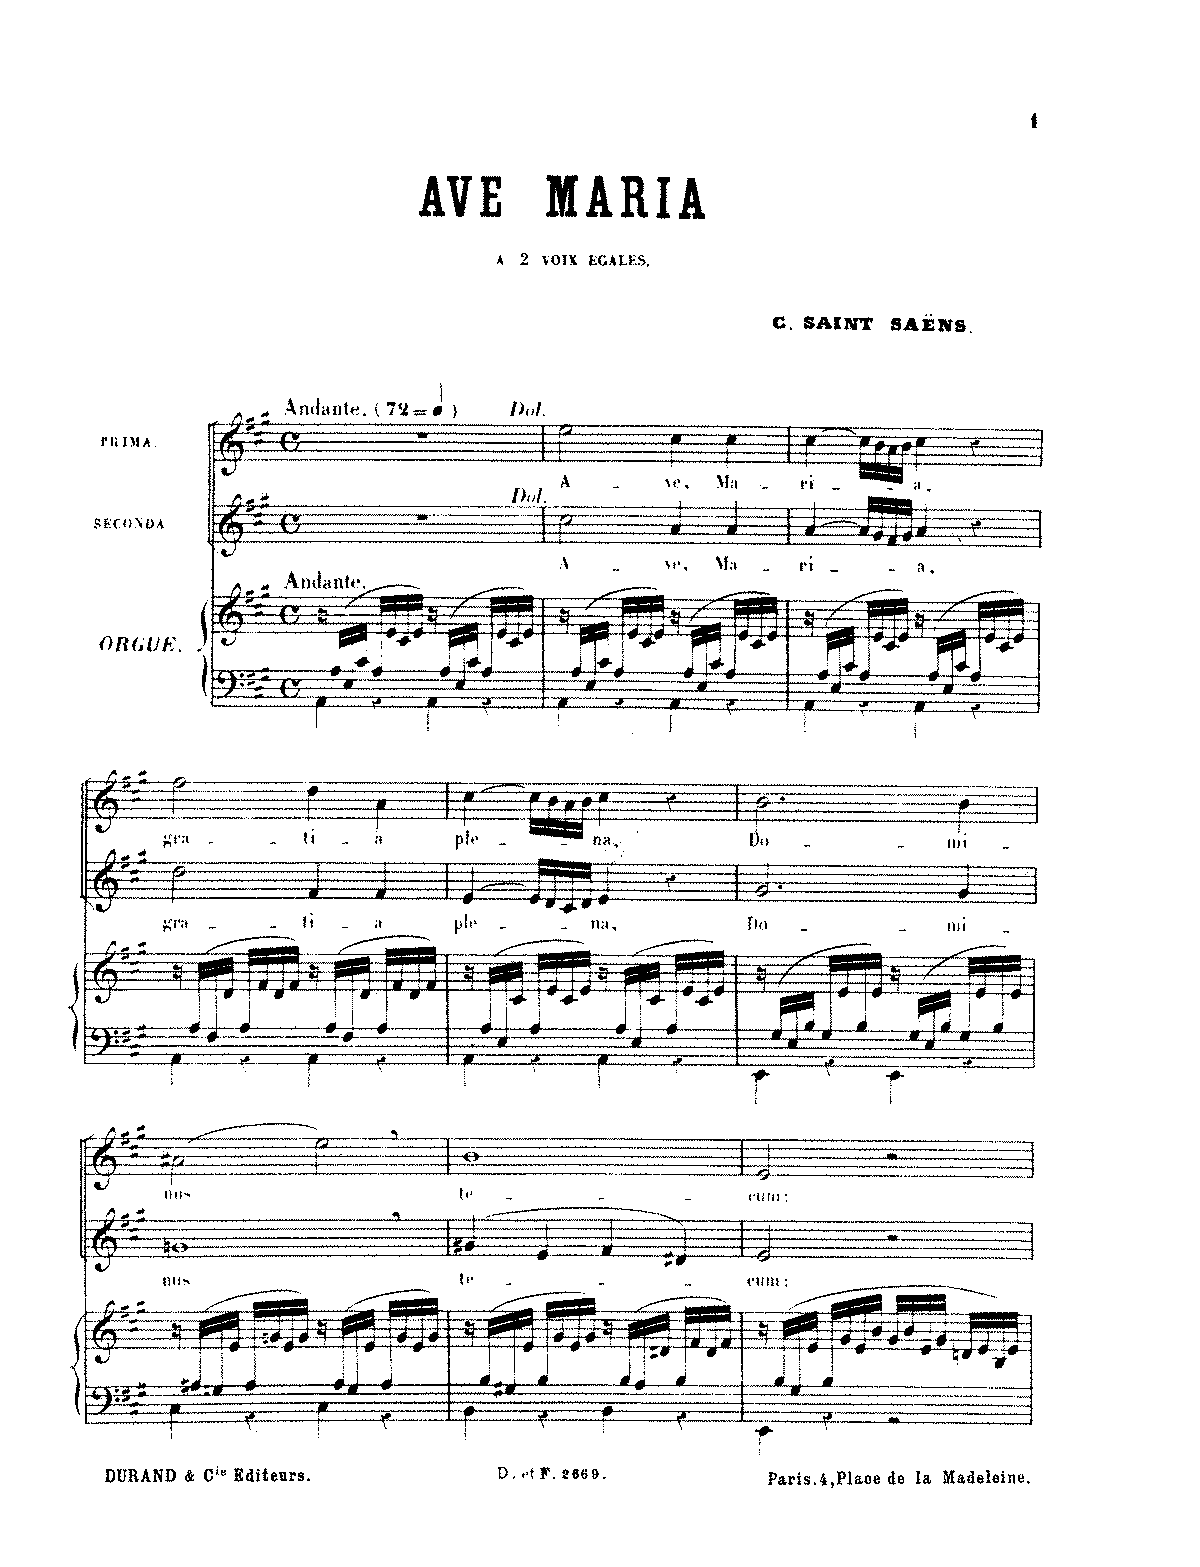 Ave maria in a major 1860 saint sans camille imslp arrangements and transcriptions hexwebz Gallery